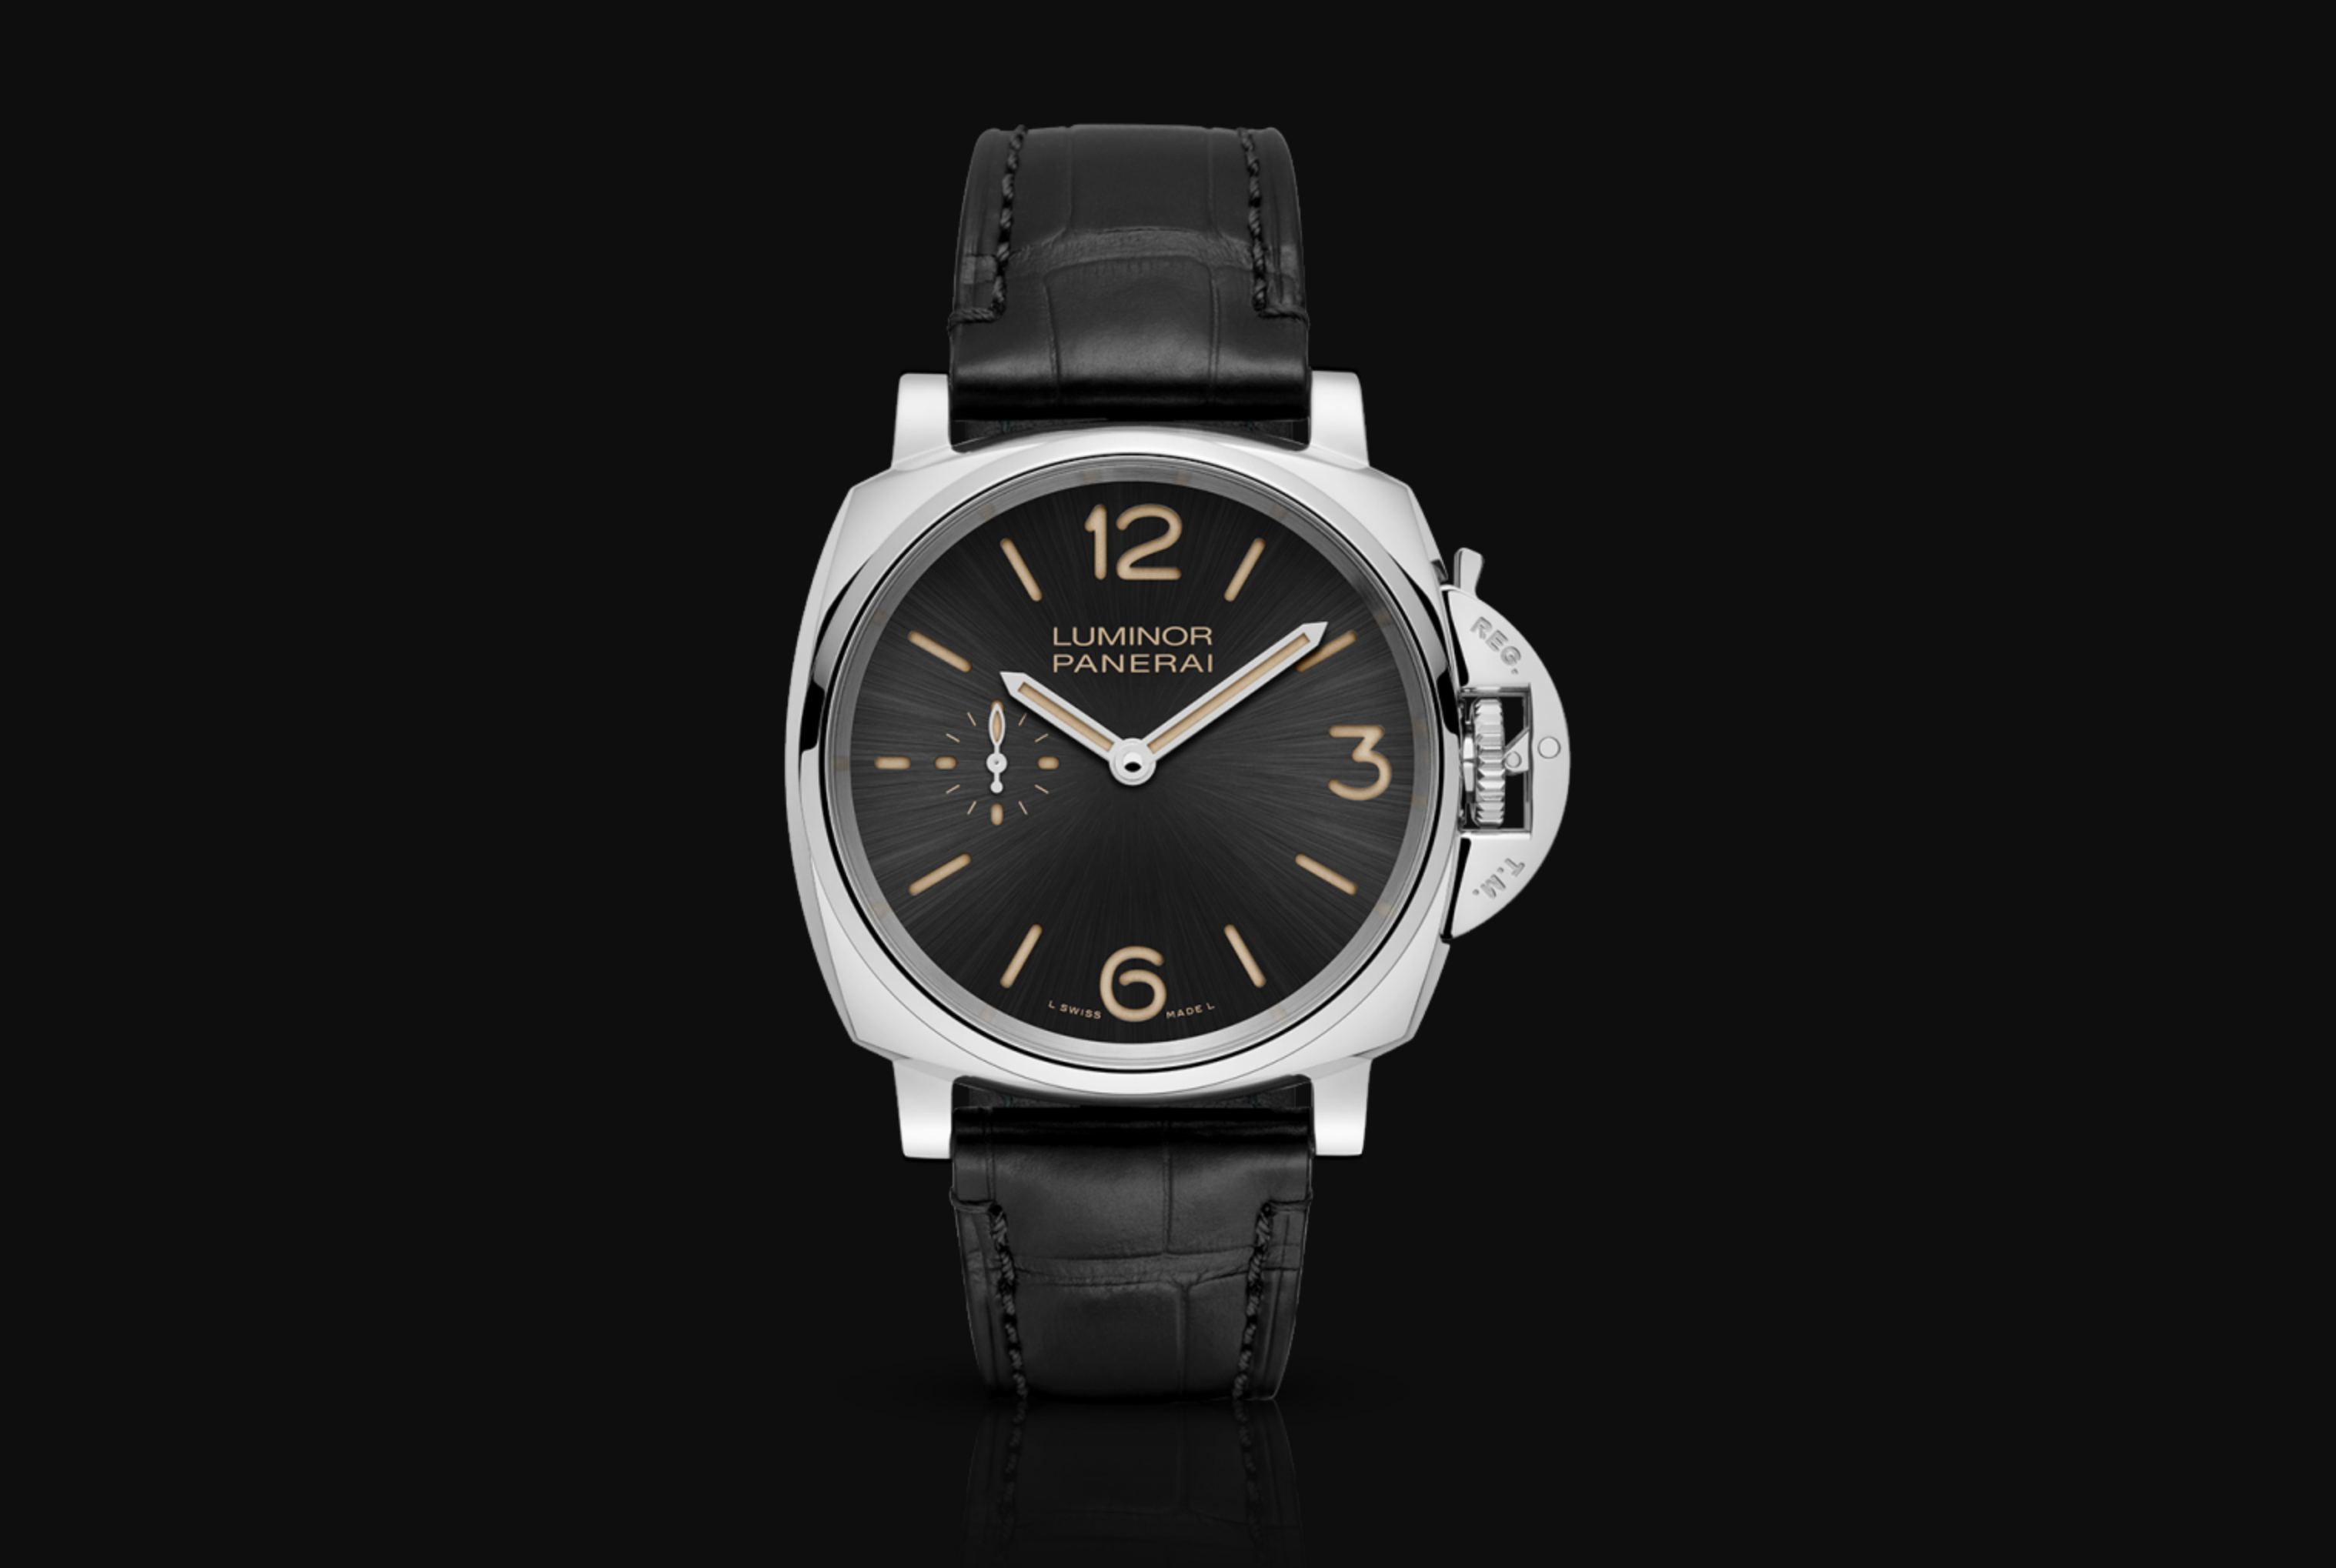 The Panerai Luminor Due features a smaller case